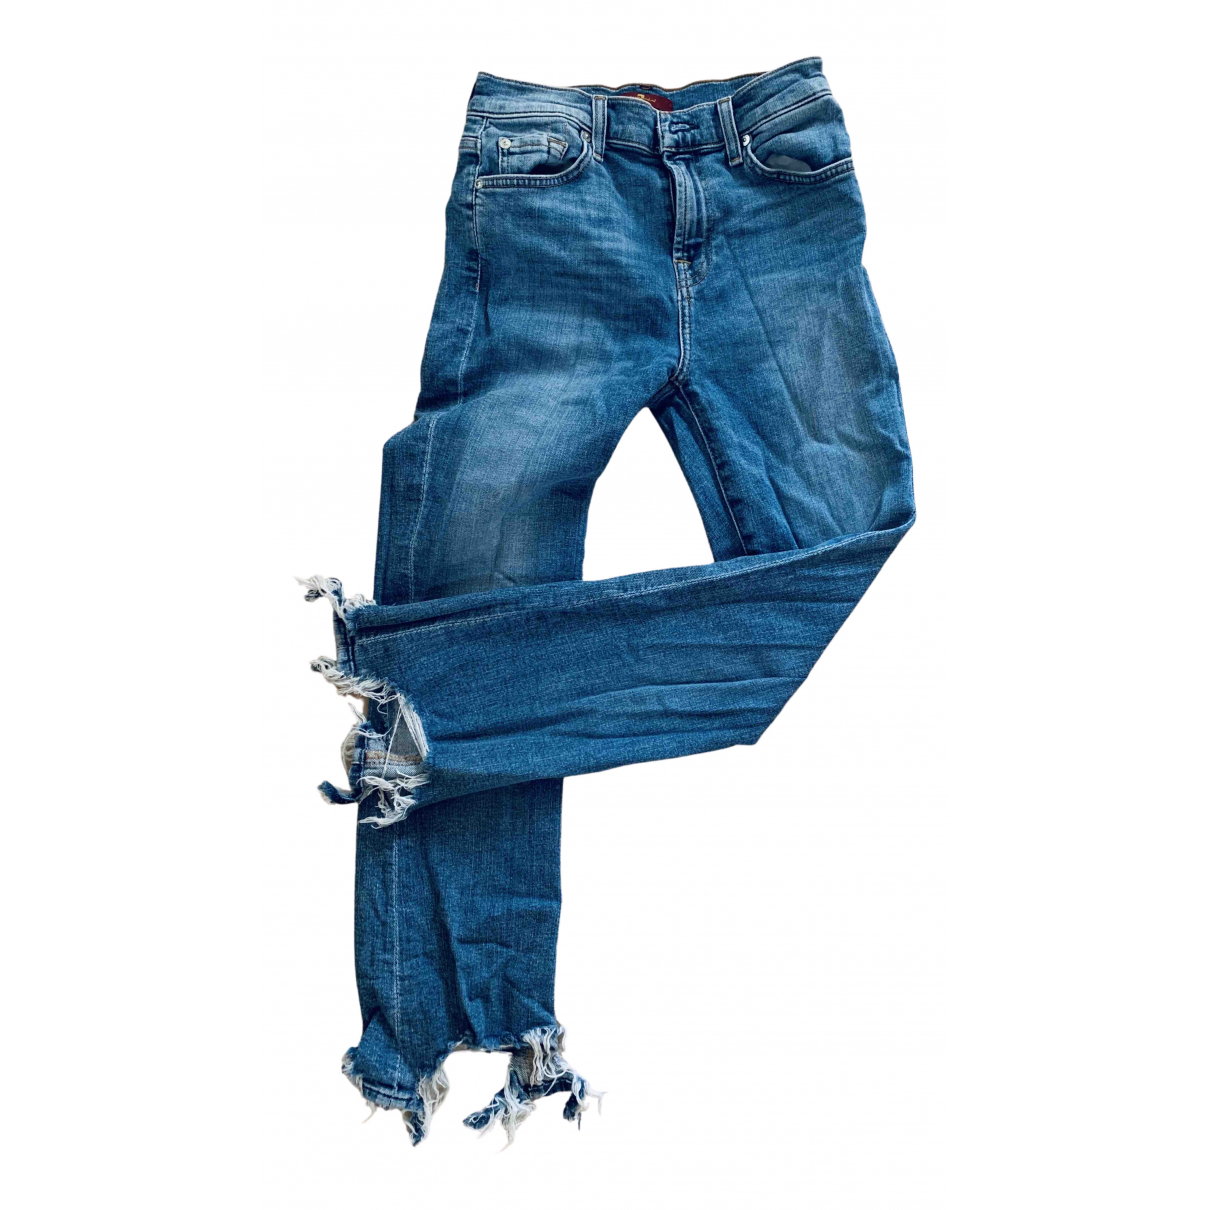 7 For All Mankind N Blue Denim - Jeans Jeans for Women 26 US